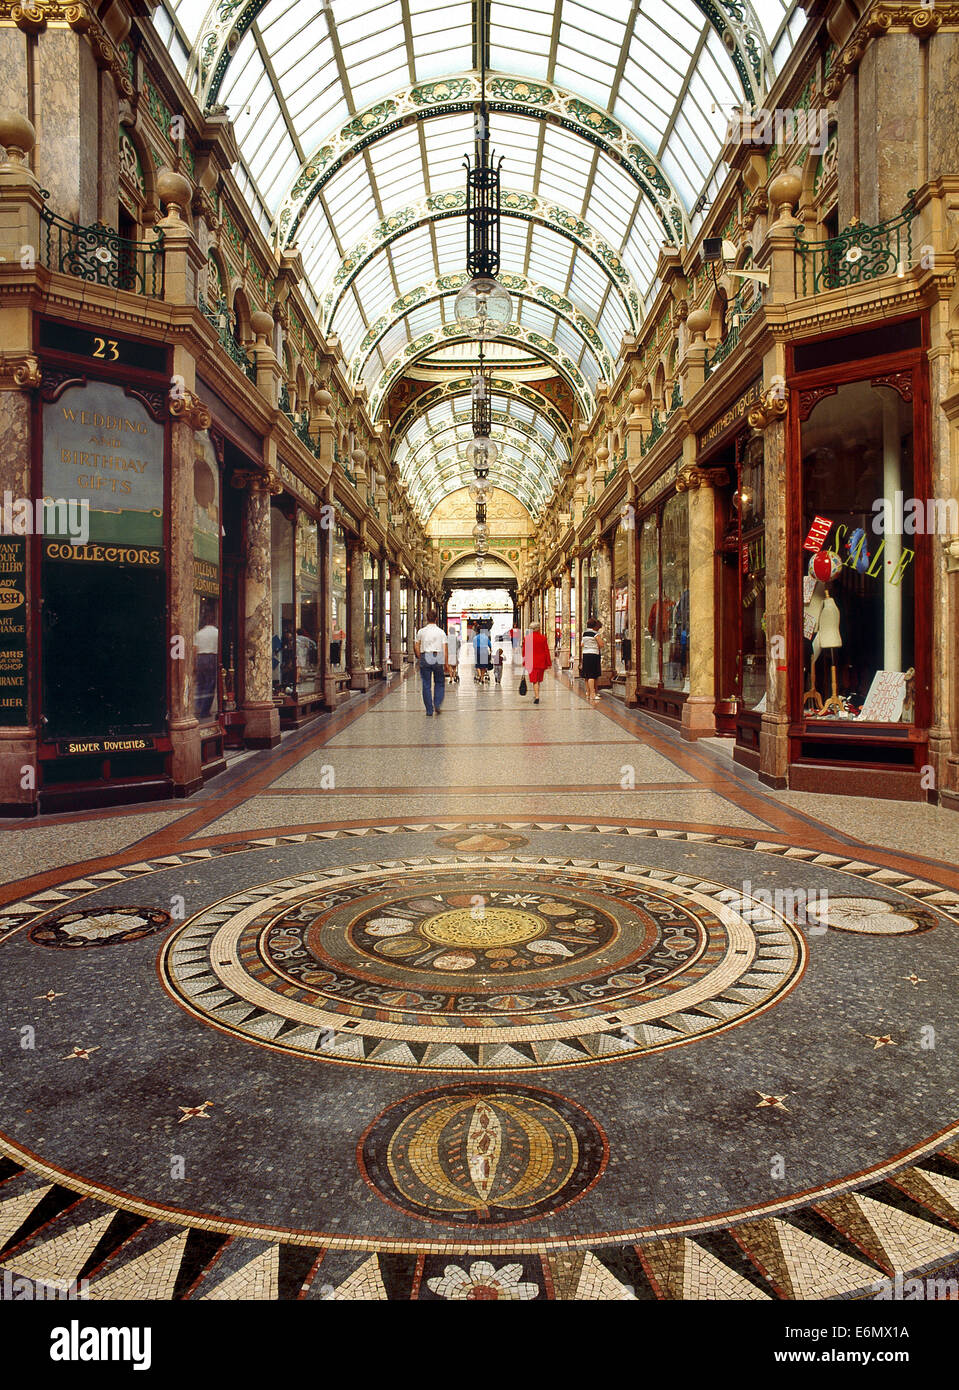 County Arcade in Leeds designed by theatre architect Frank Matcham - Stock Image